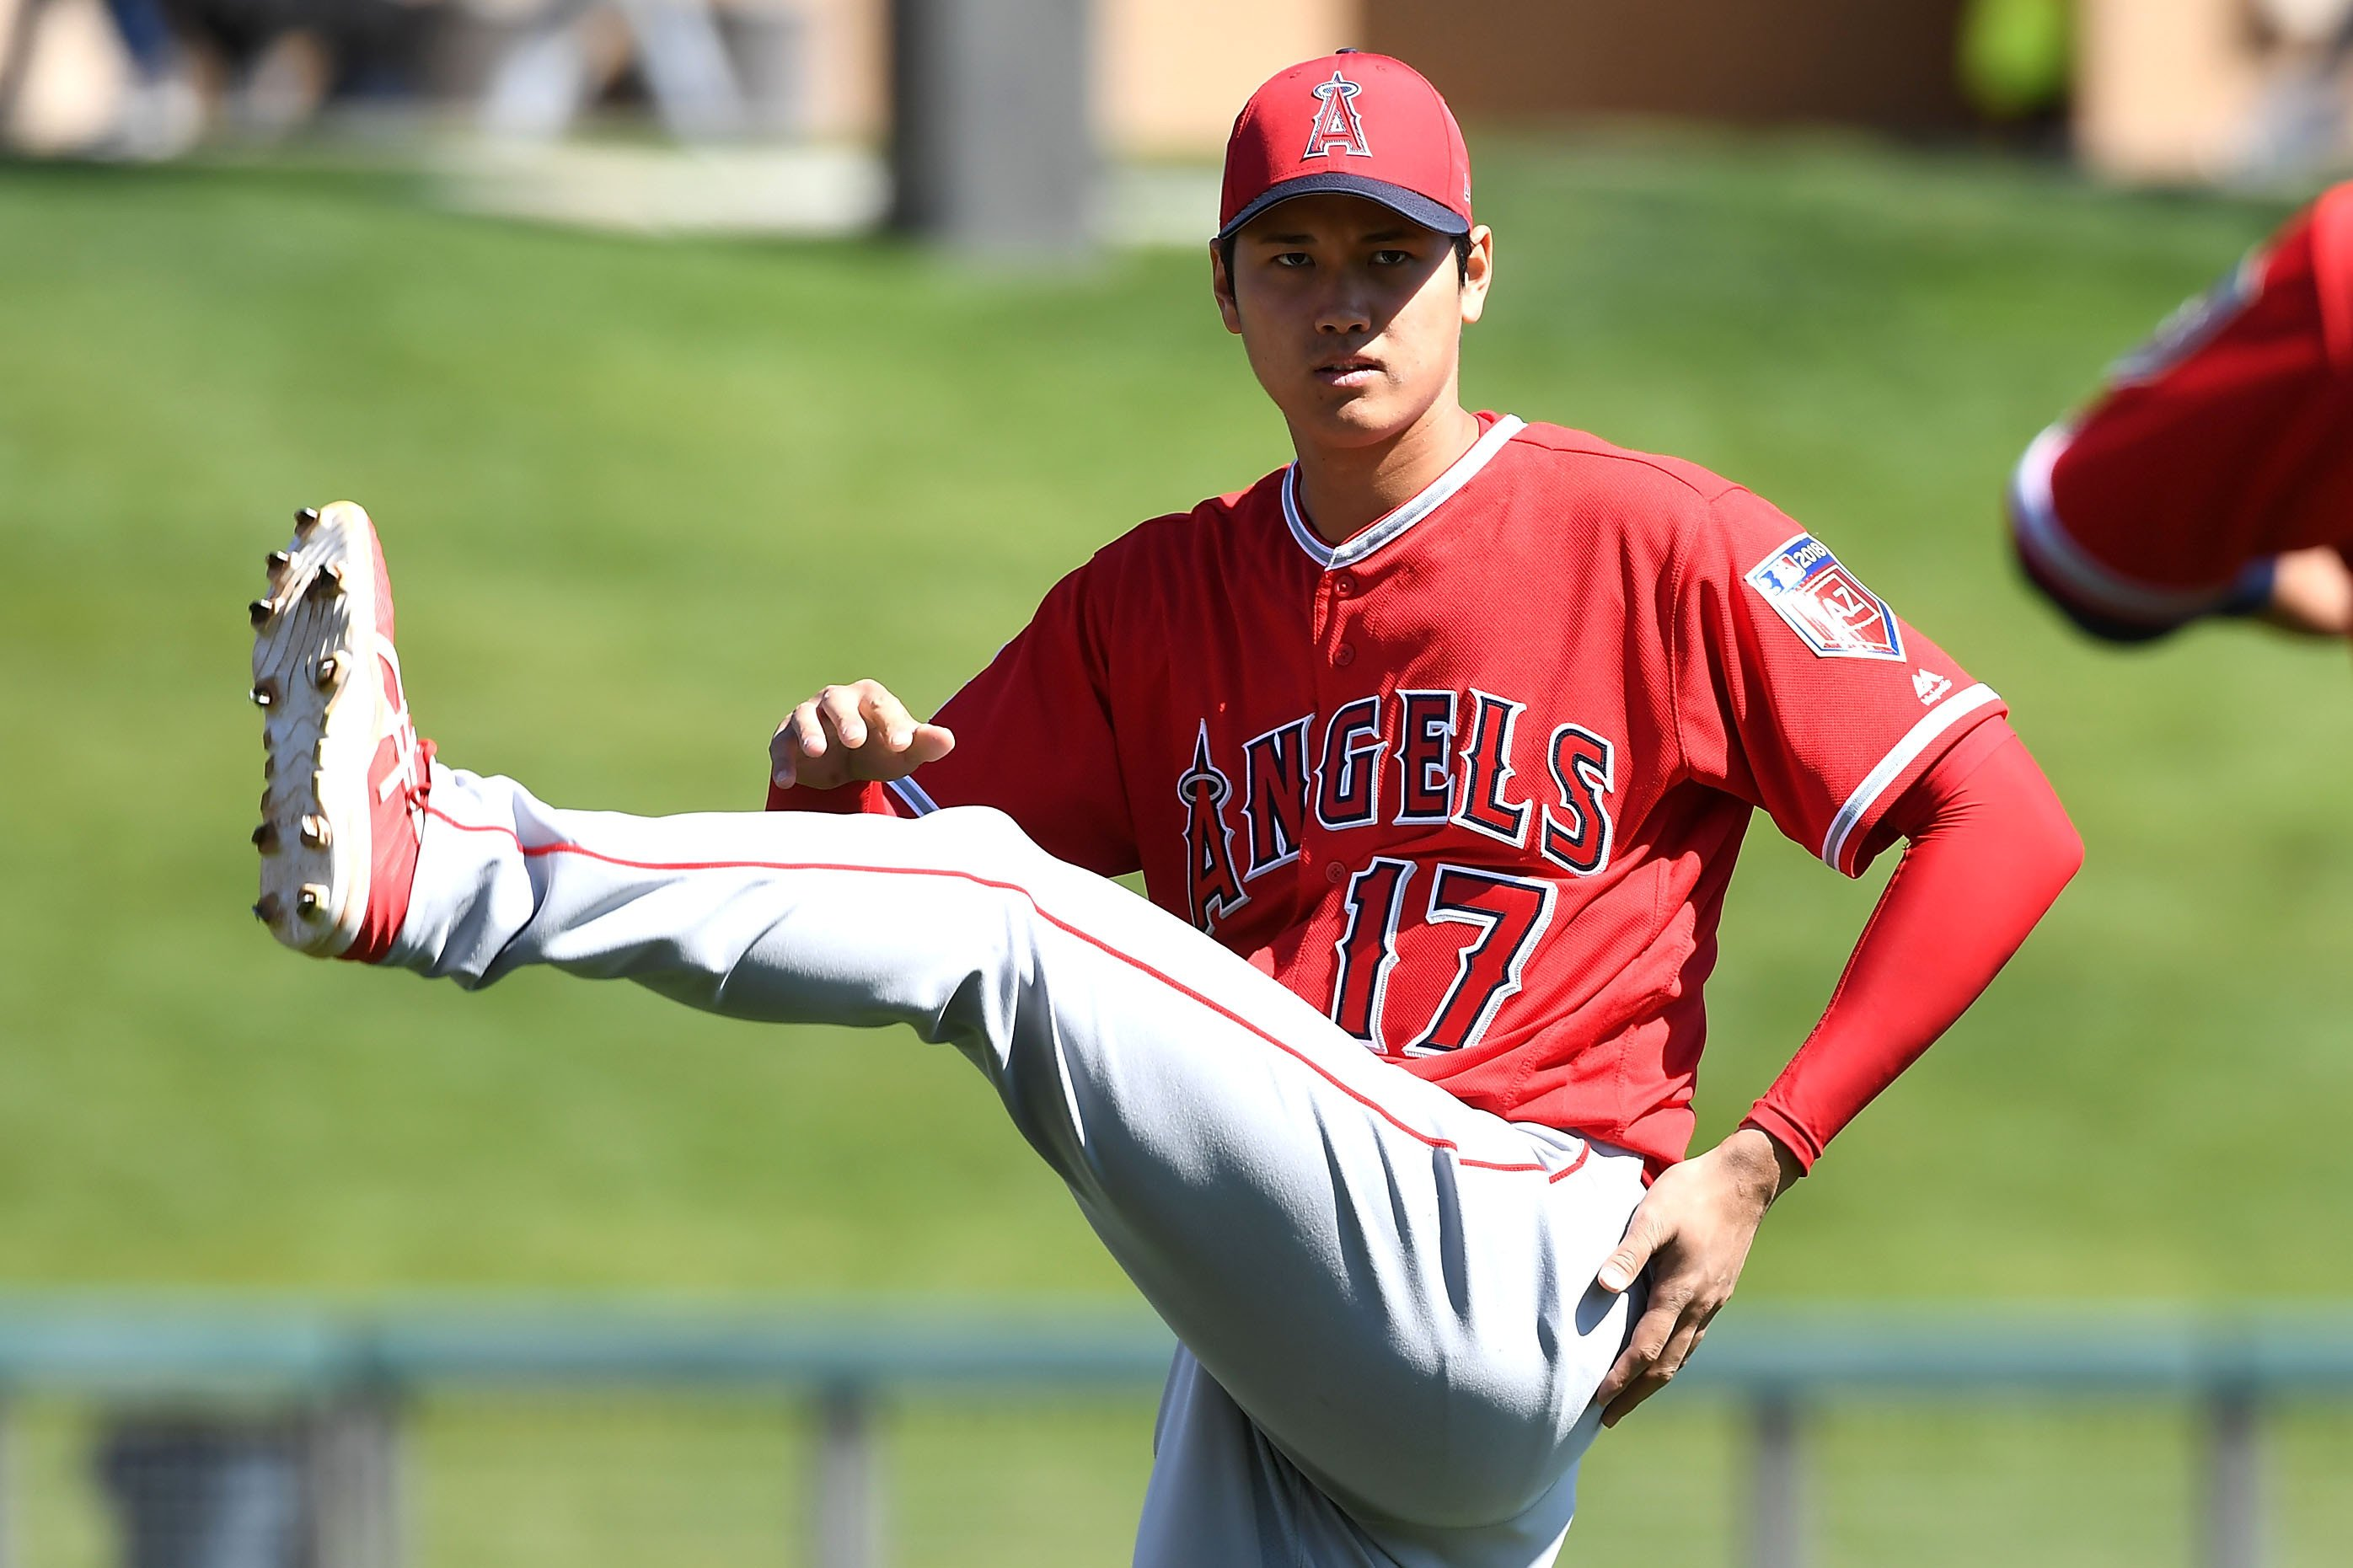 Shohei Ohtani struggling: Is it growing pains or more serious?